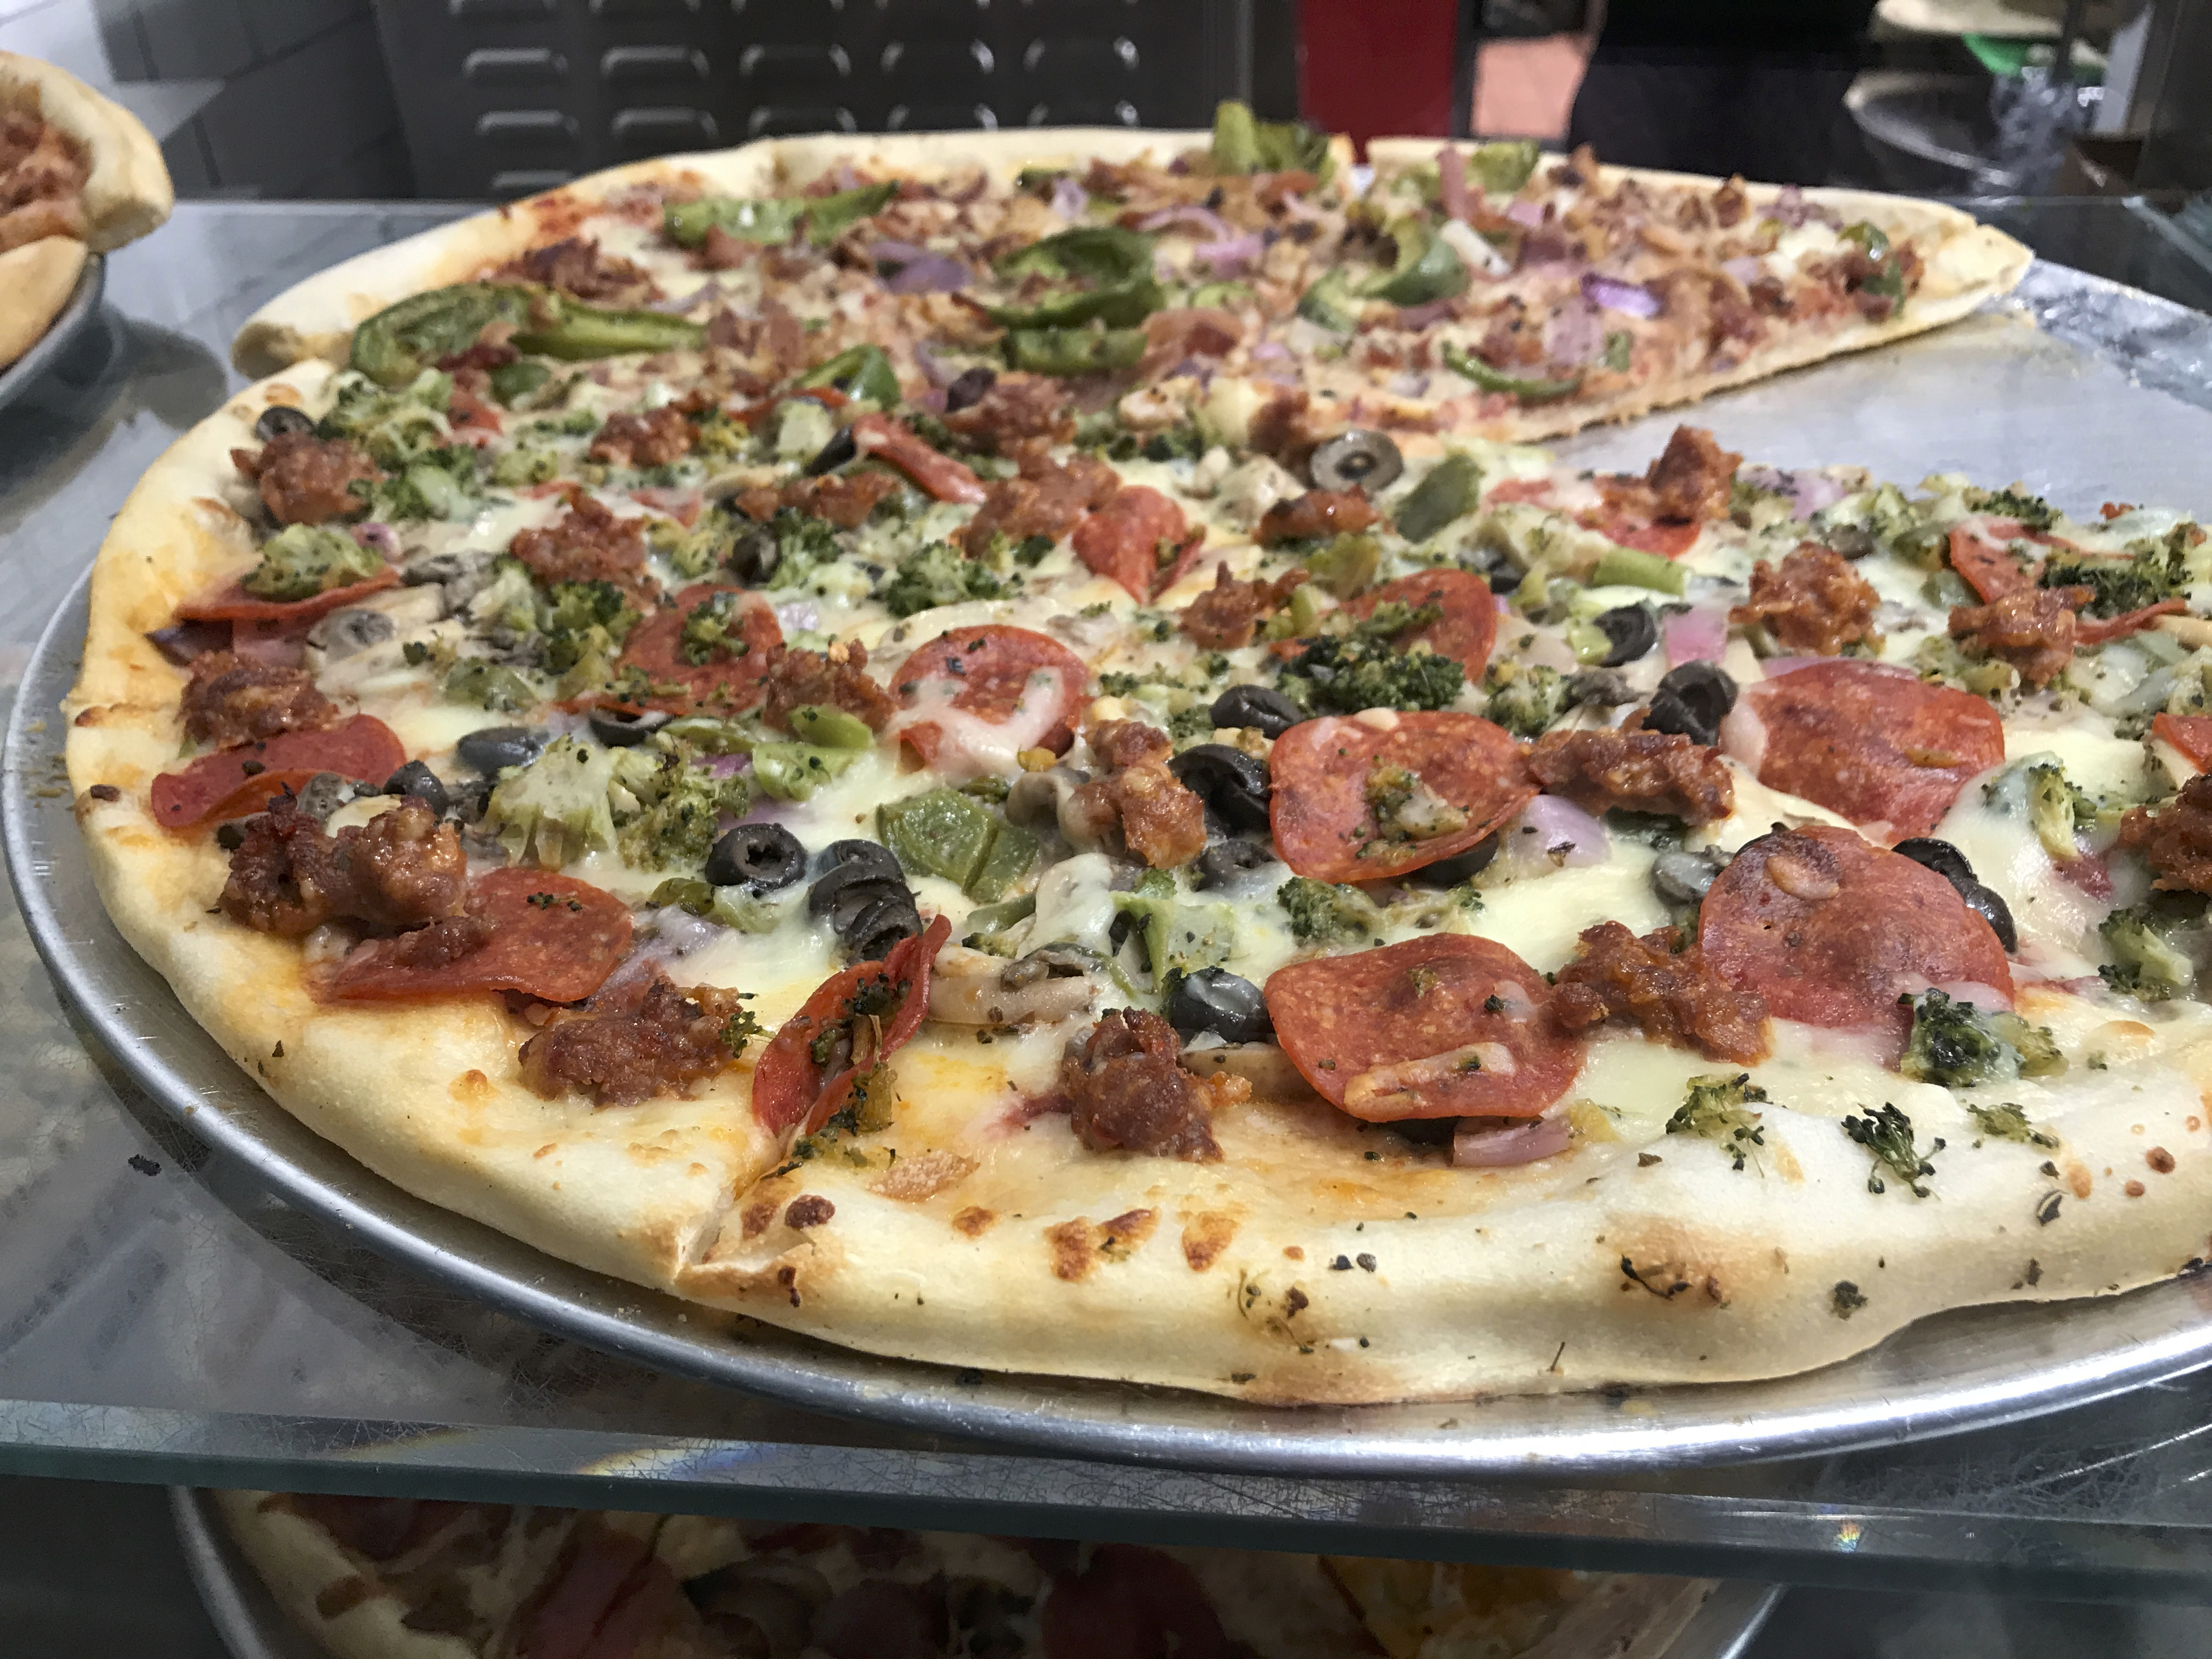 Put Your Money Where Your Mouth is - A photo of pizza with black olives, broccoli, onions, pepperoni and sausage. Slices at 2 Bros. Pizza in New York City, New York cost between $1.00 and $4.00. Photo Courtesy of FoodWaterShoes